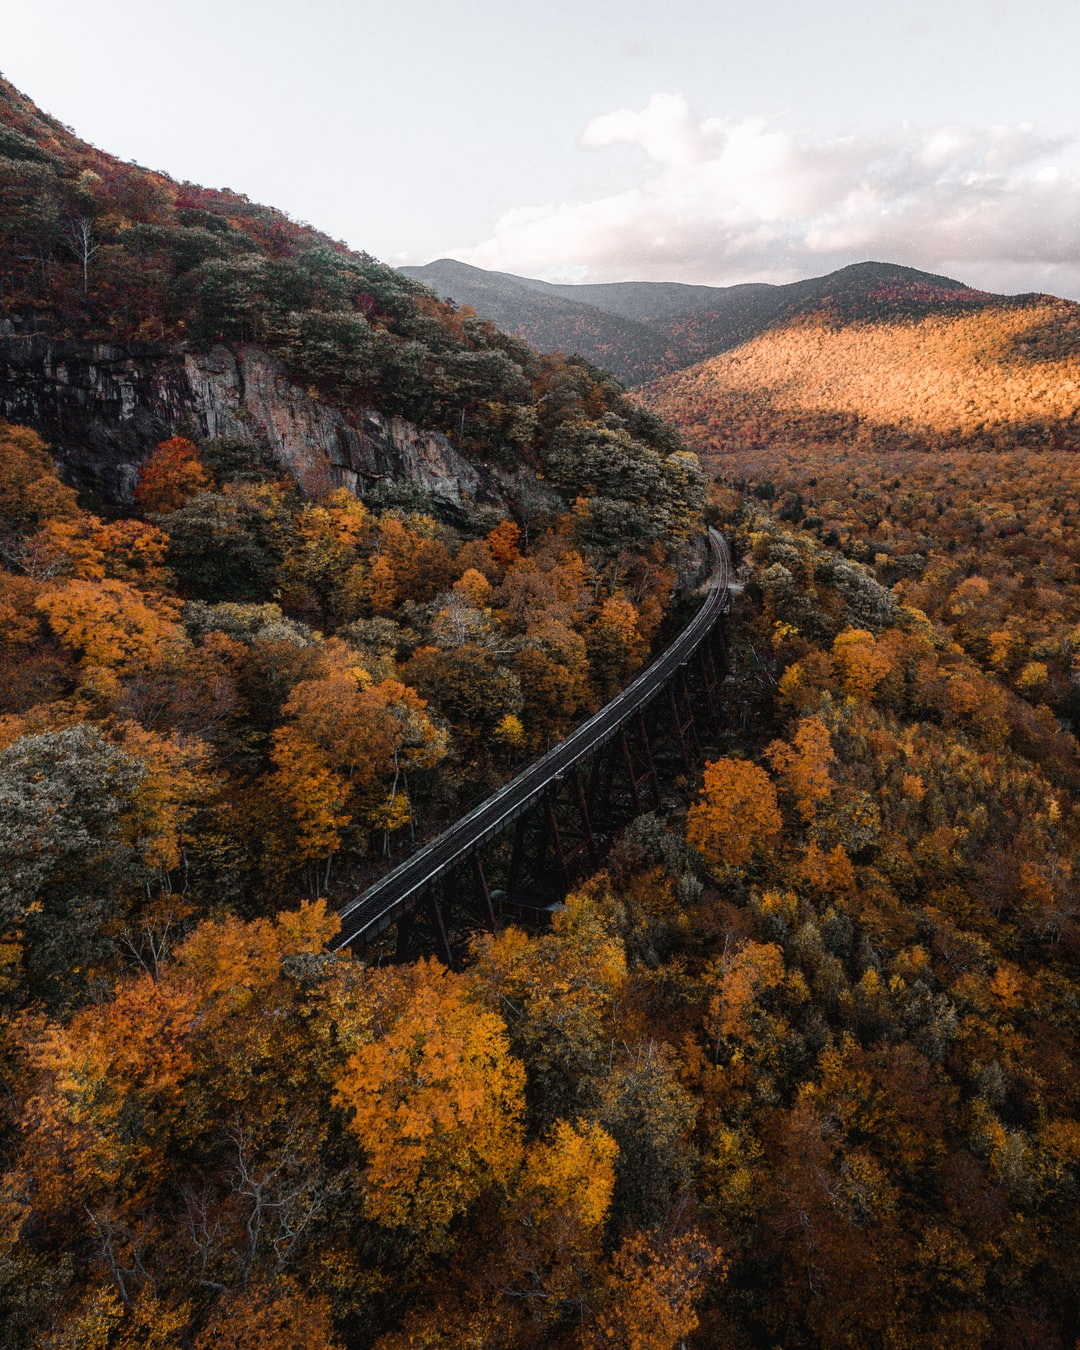 Follow me on Instagram @jevanleith for my latest content!  Here is a wide angle view of the Frankenstein Trestle in Crawford Notch of the White Mountains of NH. This was a bit past peak foliage, but still a great scene!